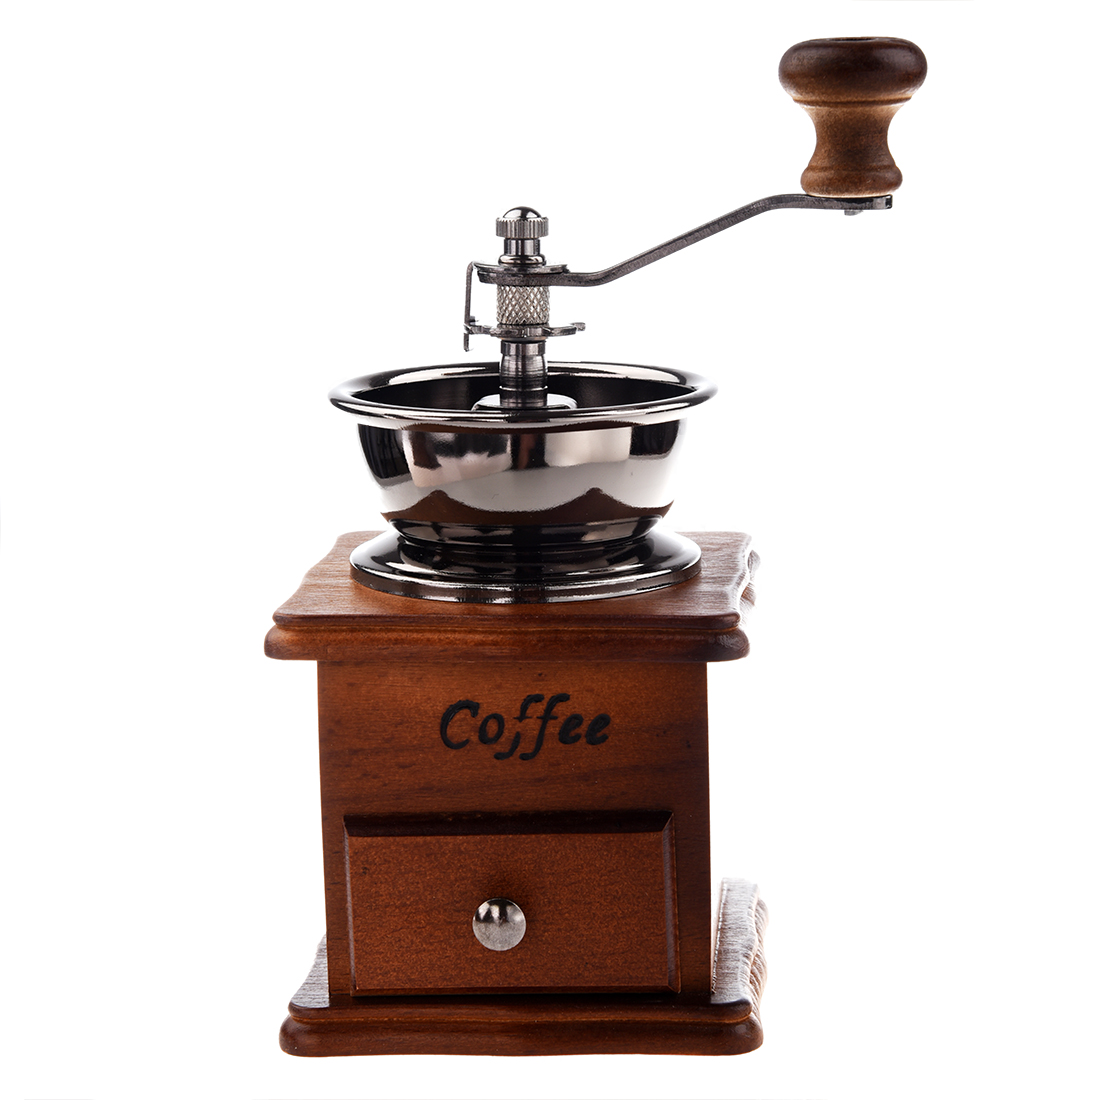 Classical Wooden Manual Coffee Grinder Stainless Steel Retro Coffee Spice Mini Burr Mill With High-quality Ceramic Millstone 5306 classical wooden manual pepper spice mill grinder muller wood